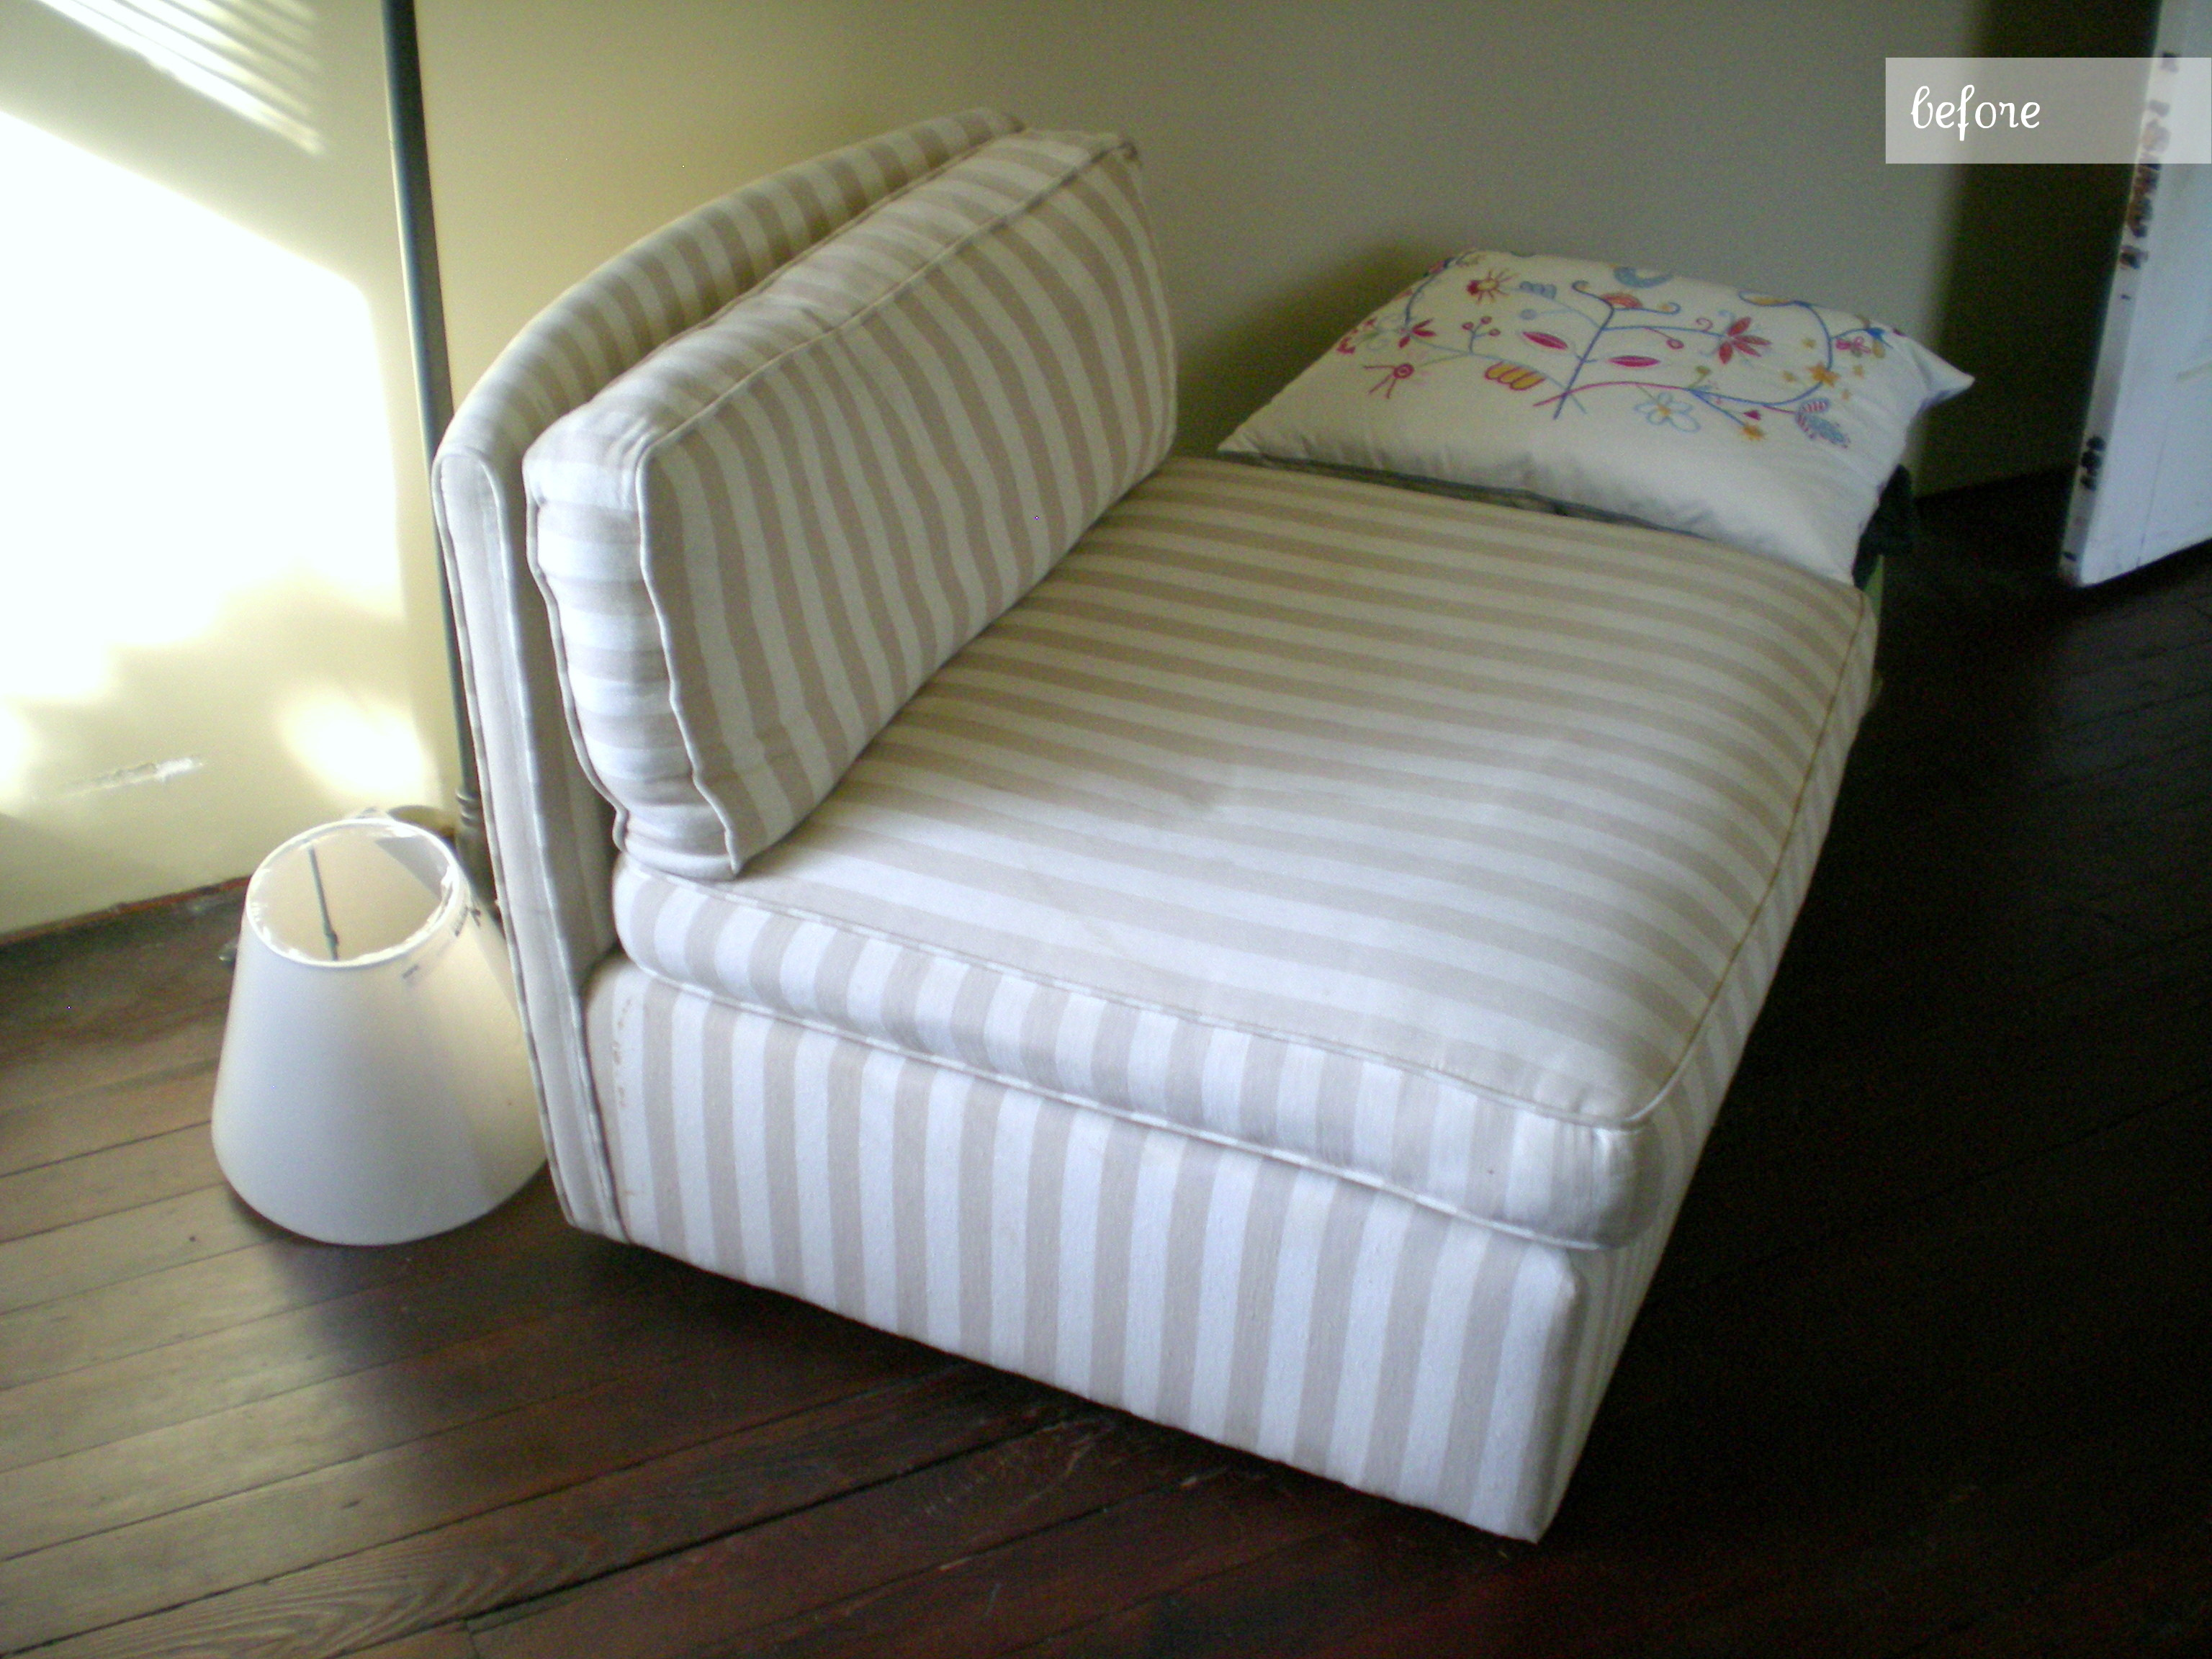 Before and After Slipper Chair Reupholstery Earnest Home co